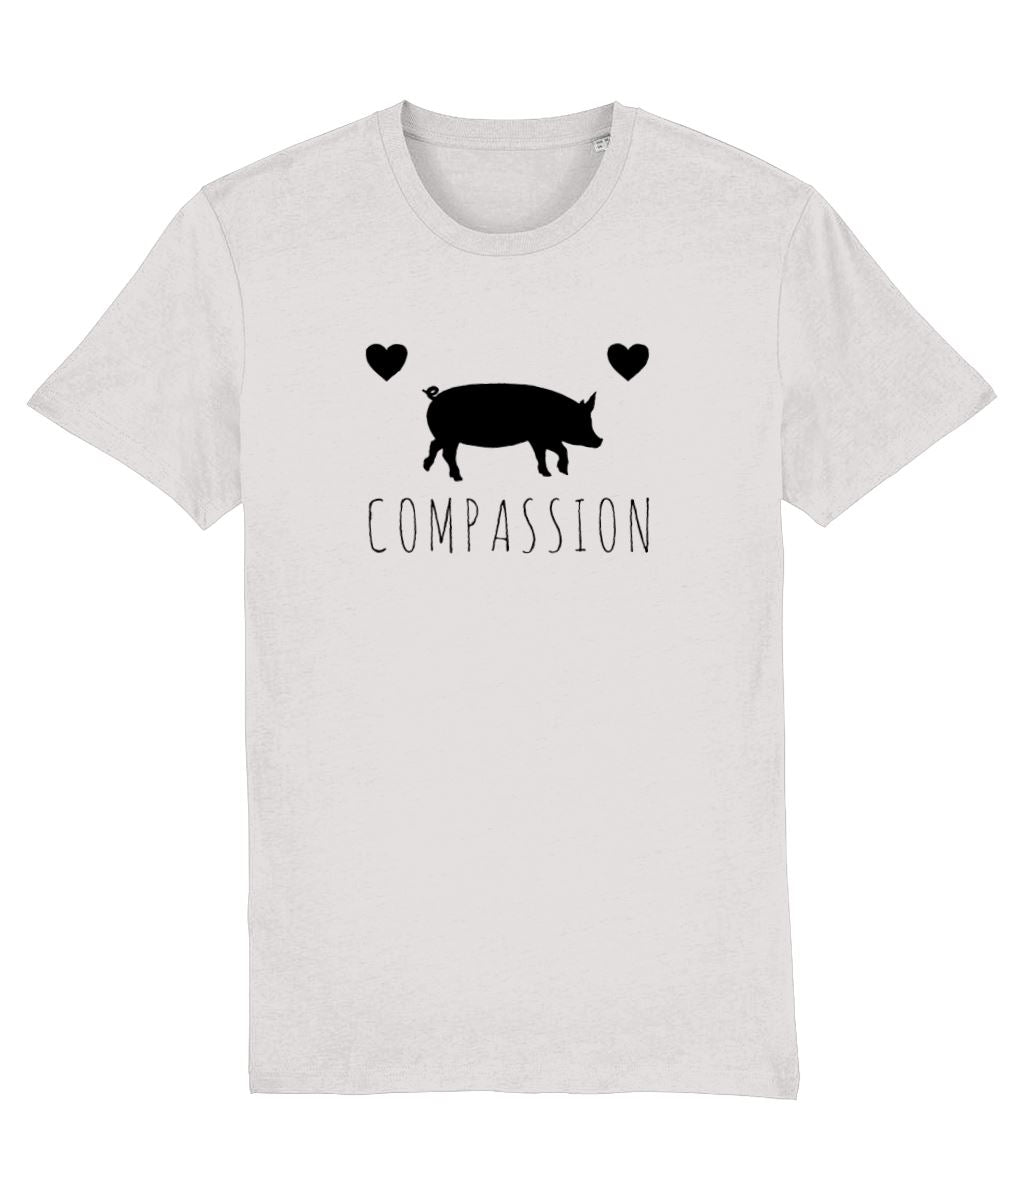 """Compassion"" Vegan T-Shirt - 100% Organic Cotton (Unisex) Clothing Vegan Original Cream Heather Grey XX-Small"